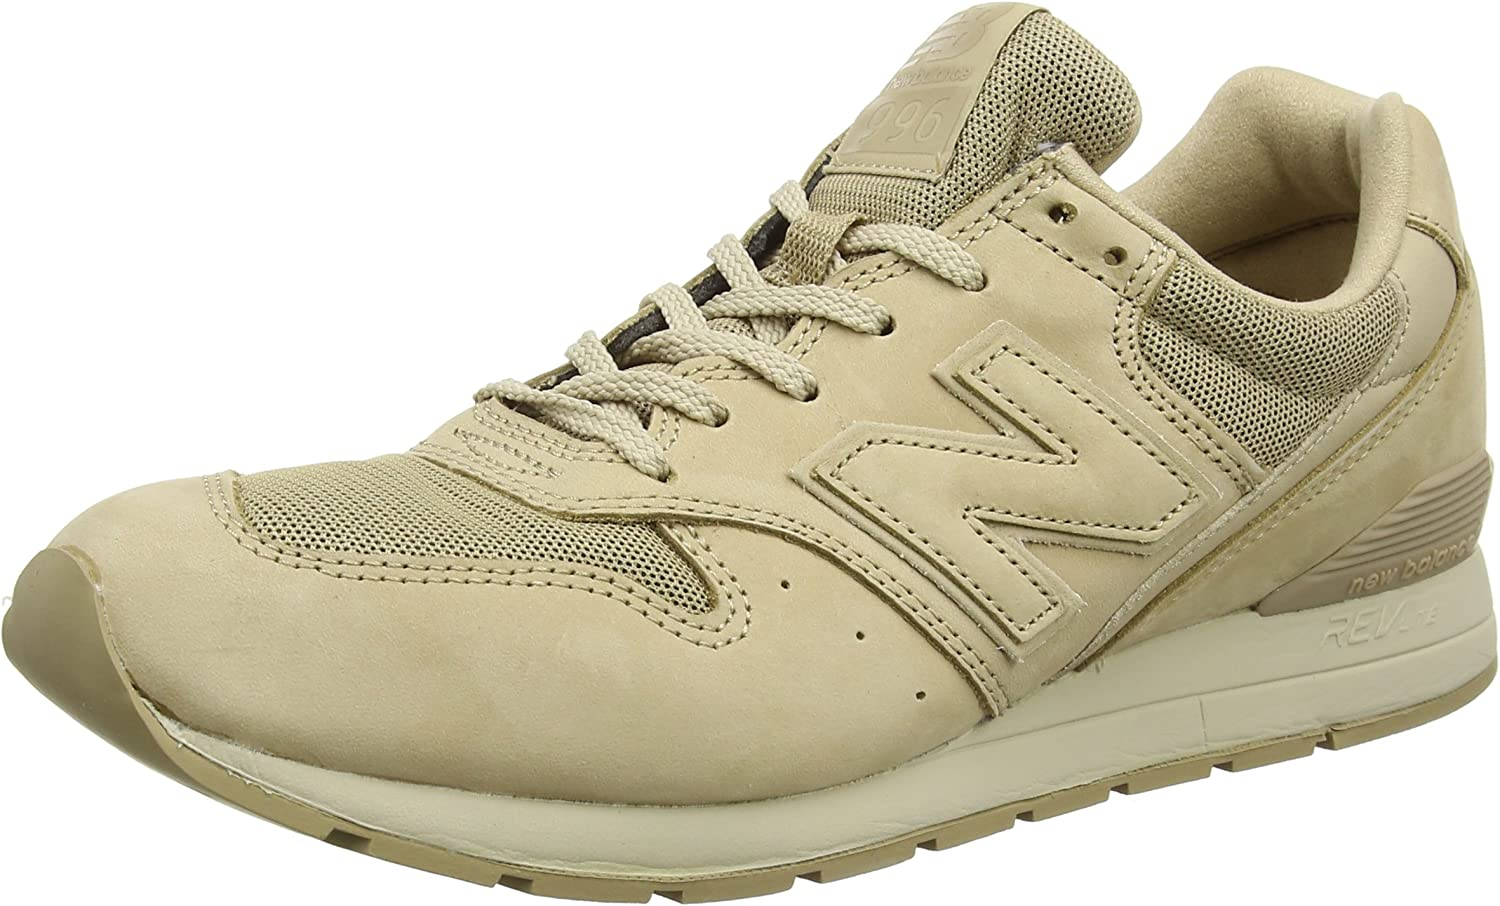 New Balance Men's's Mrl996v2 Low-Top Sneakers